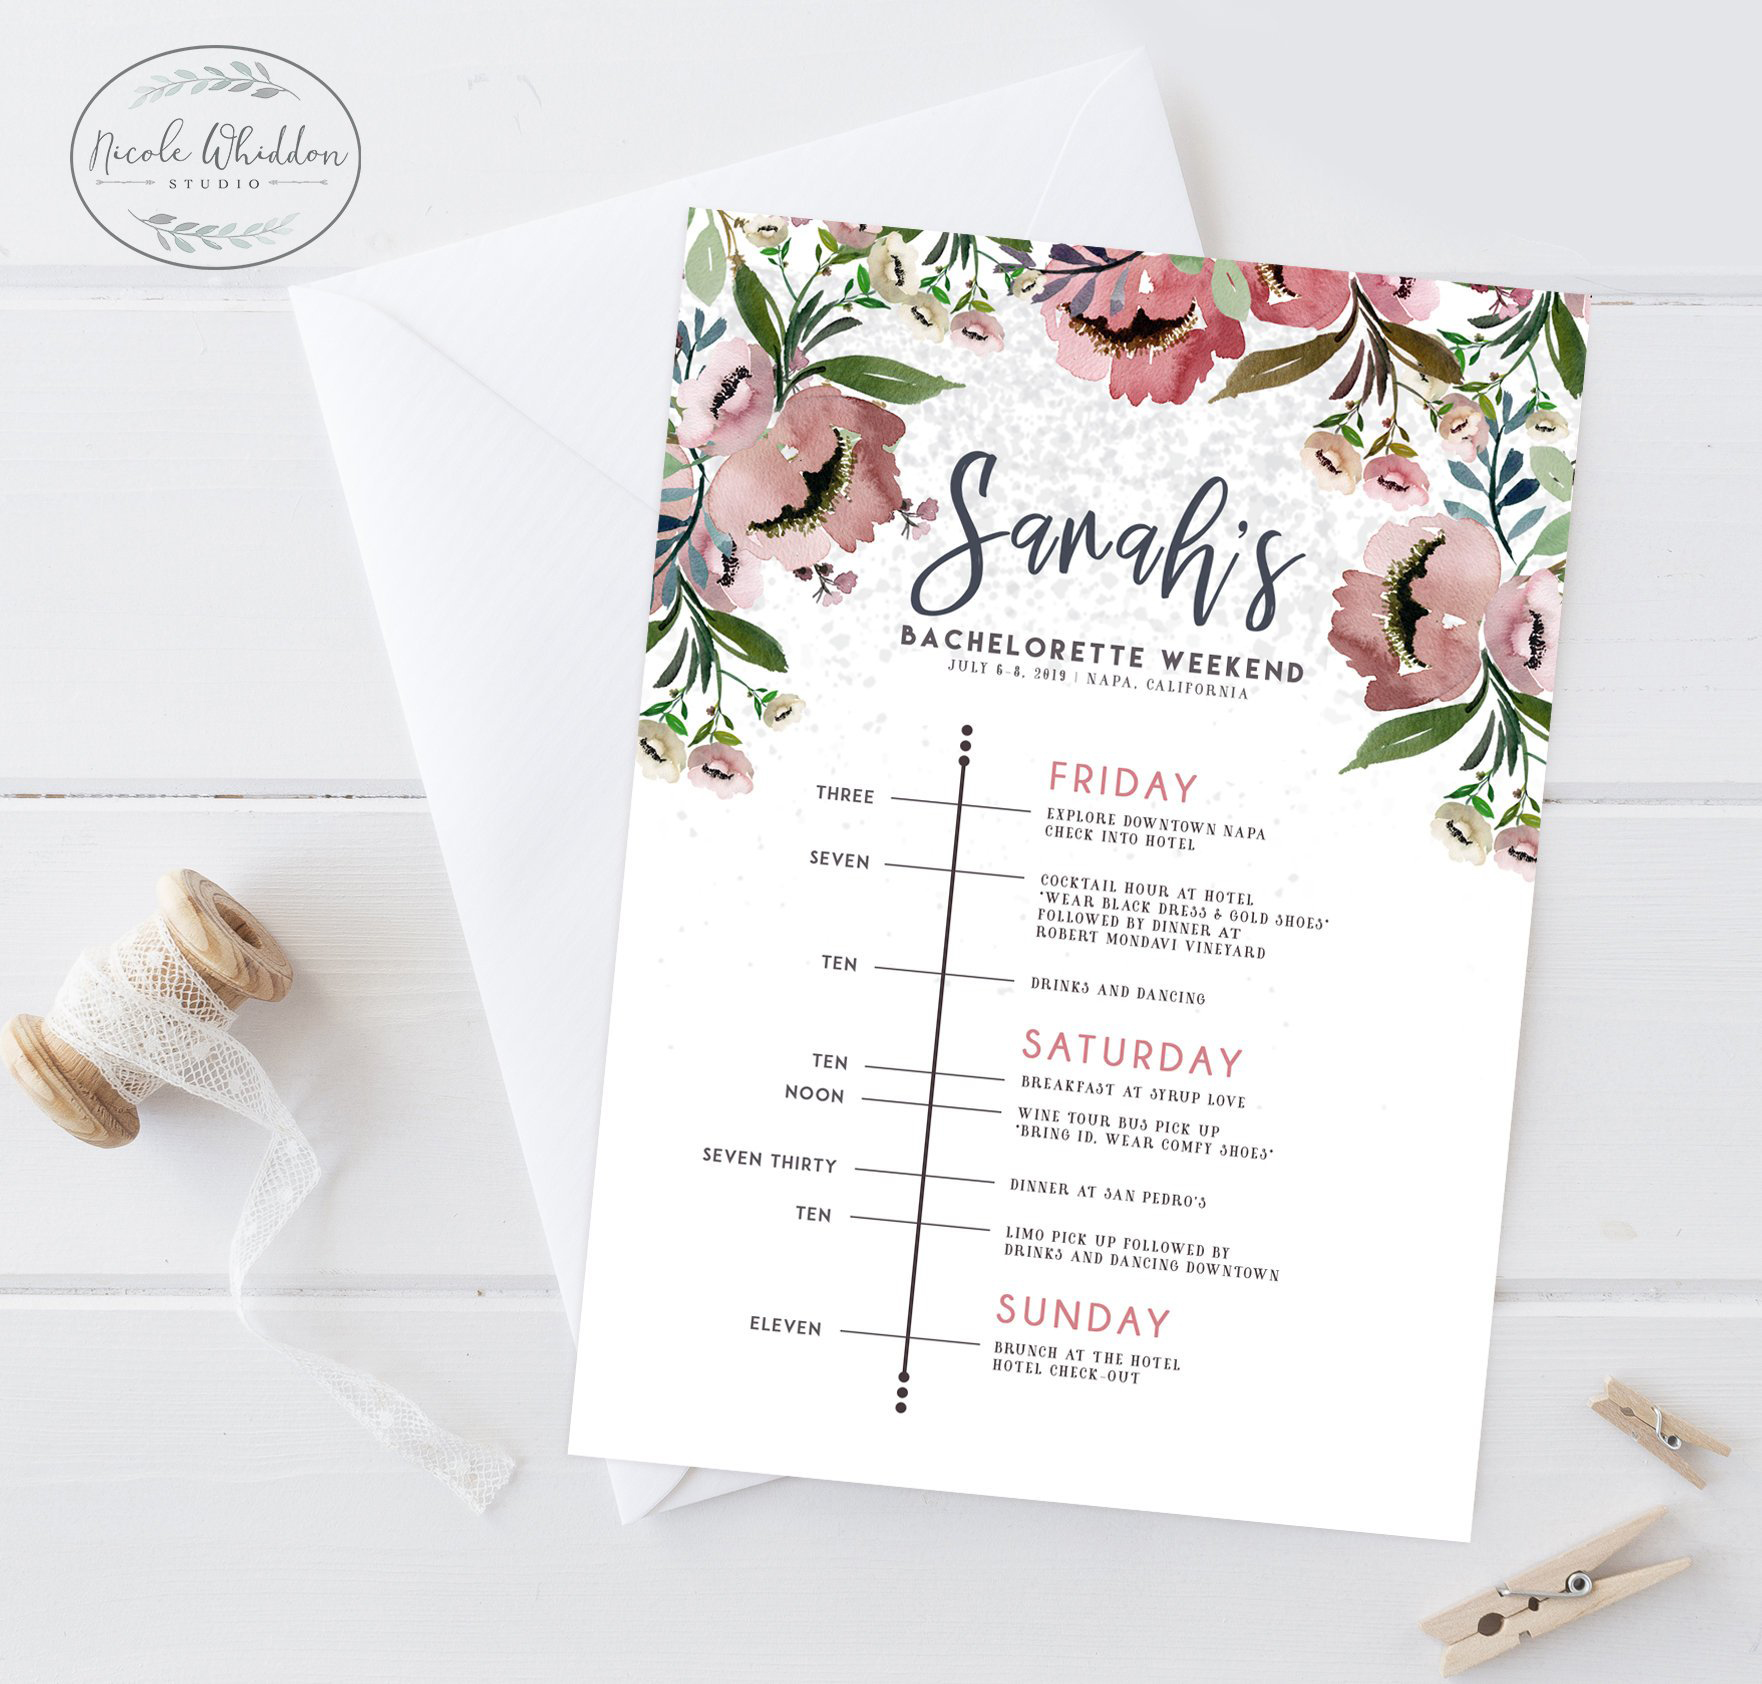 bachelorette party invites etsy timeline